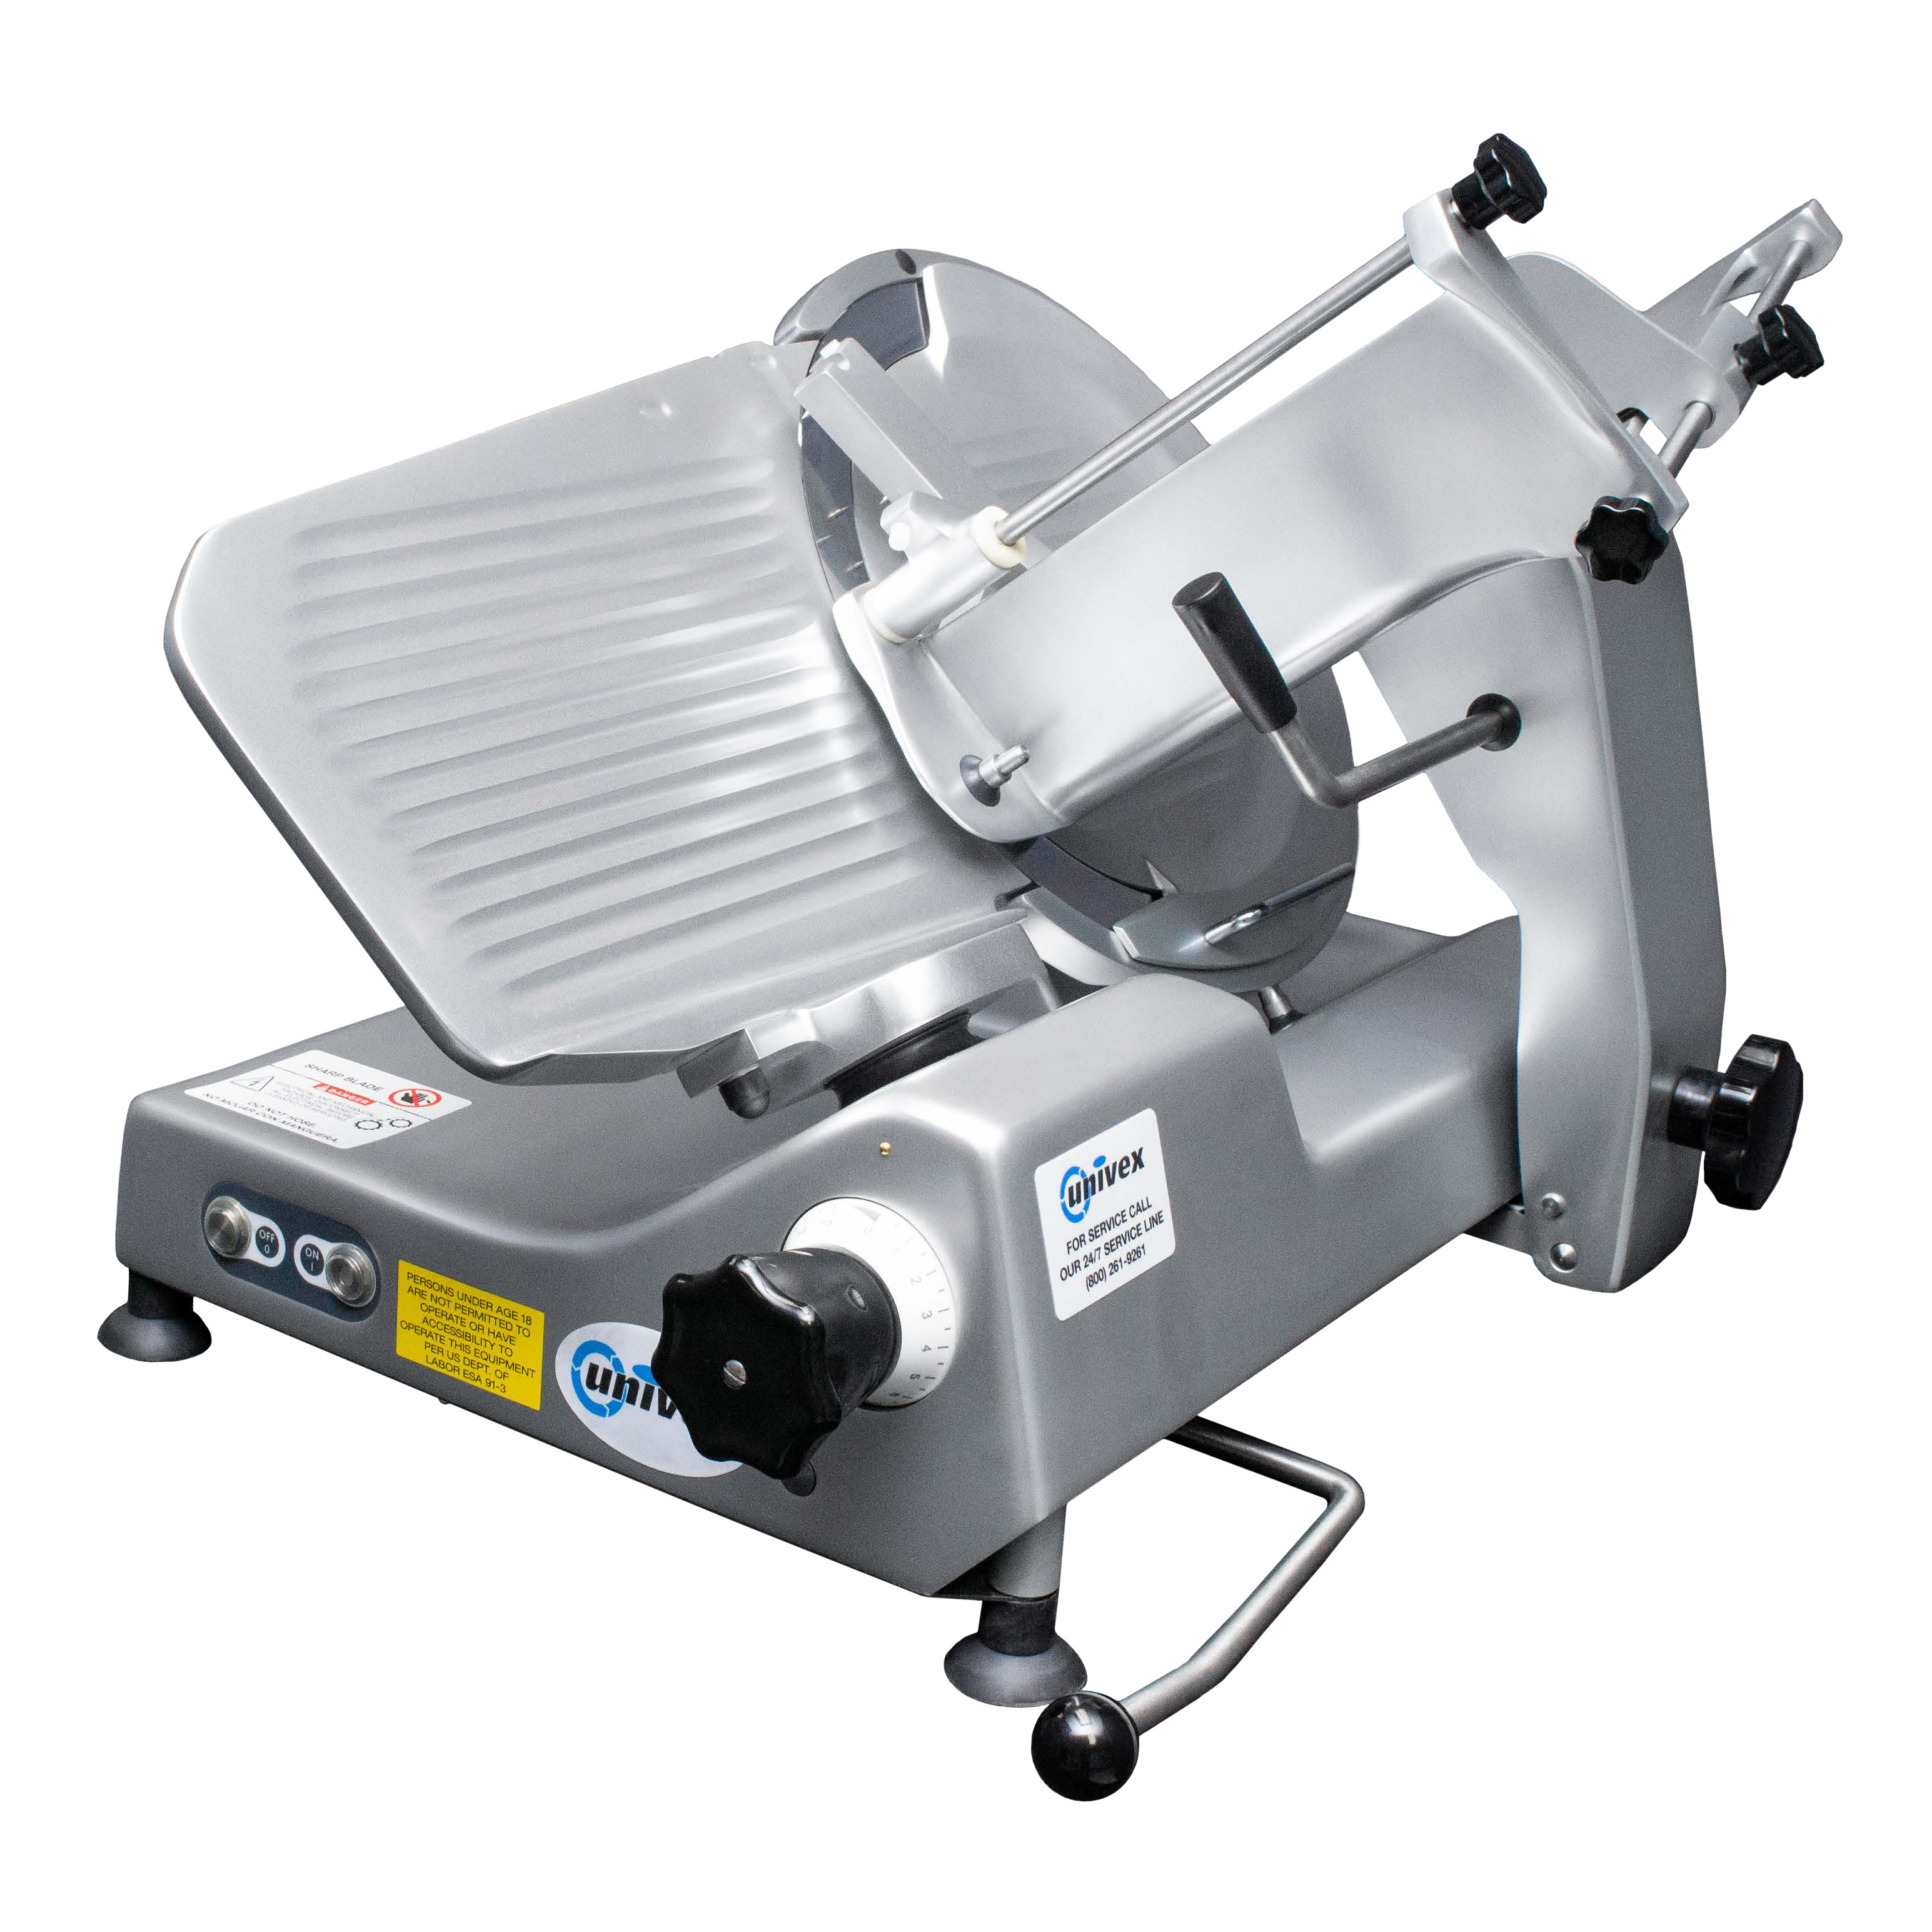 Univex 1000M food slicer, electric